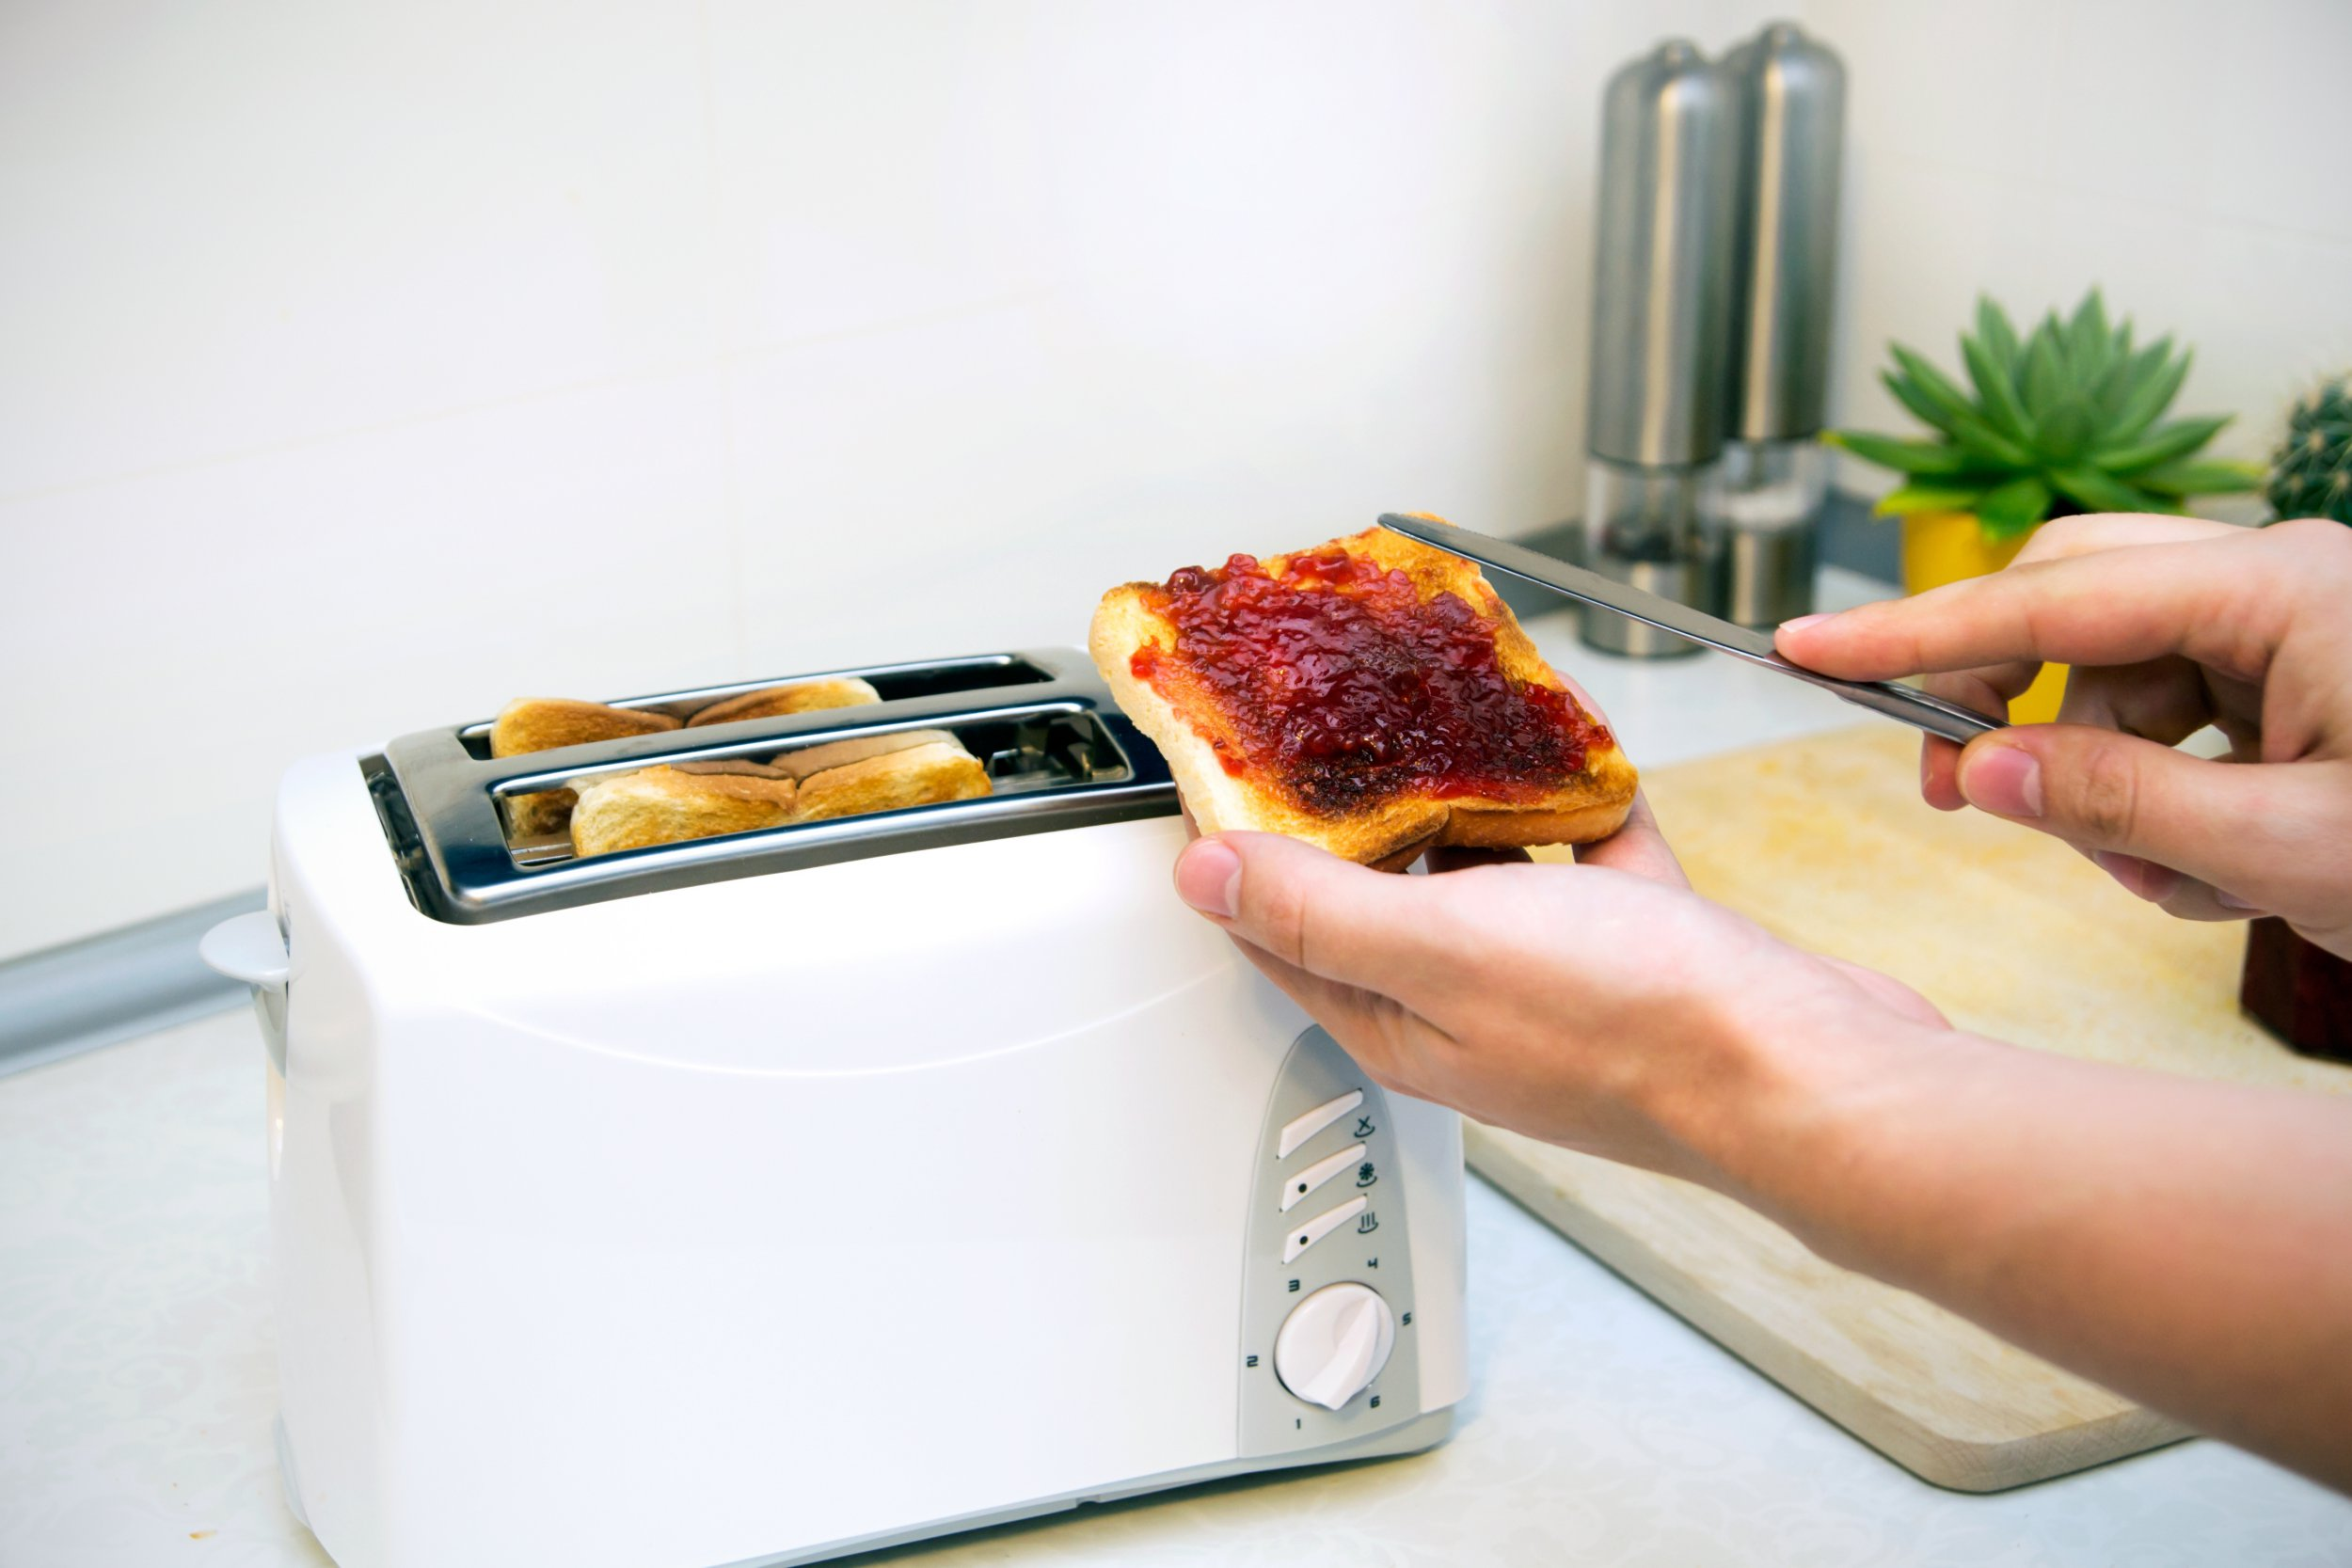 Preparing toast with jam for breakfast